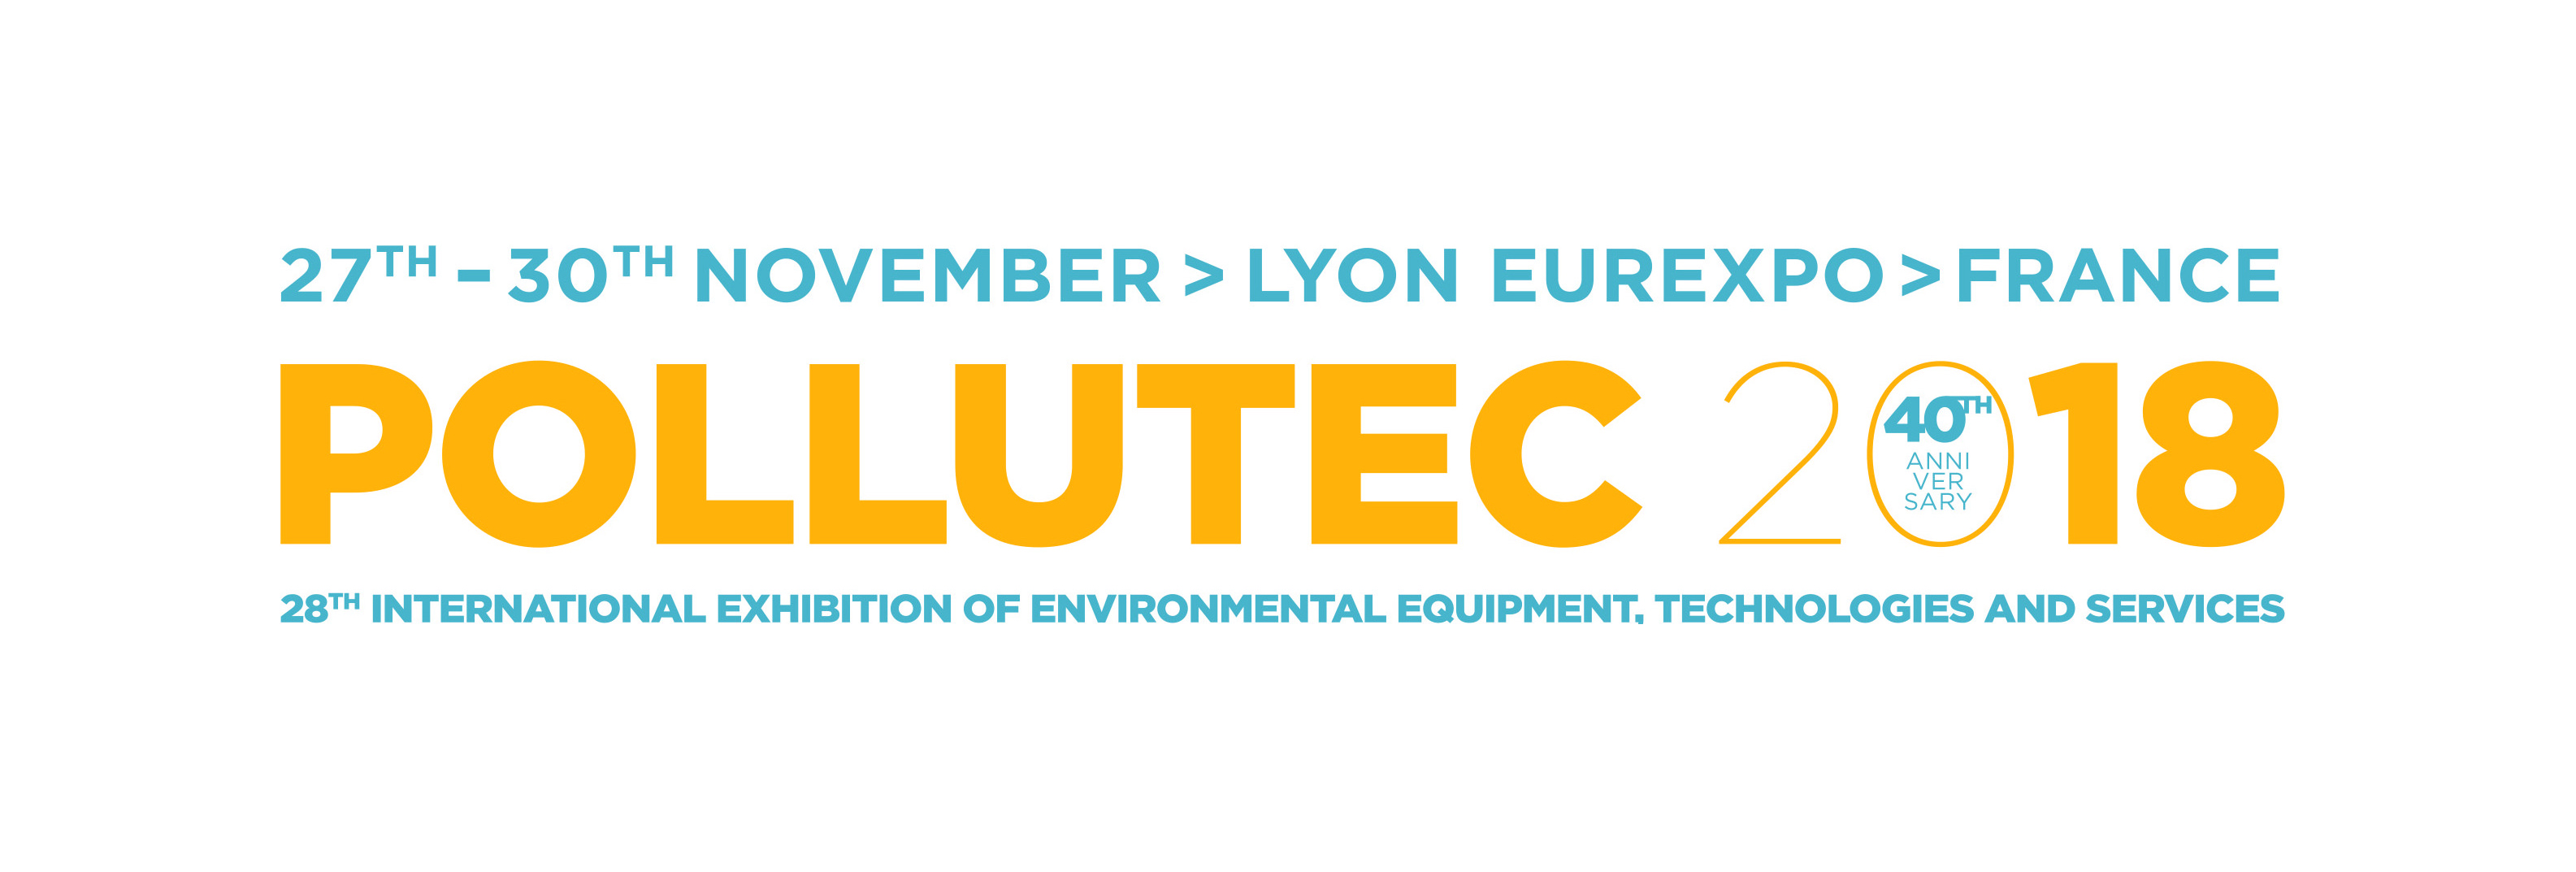 Come and visit Sesaly at Pollutec 2018 in Lyon